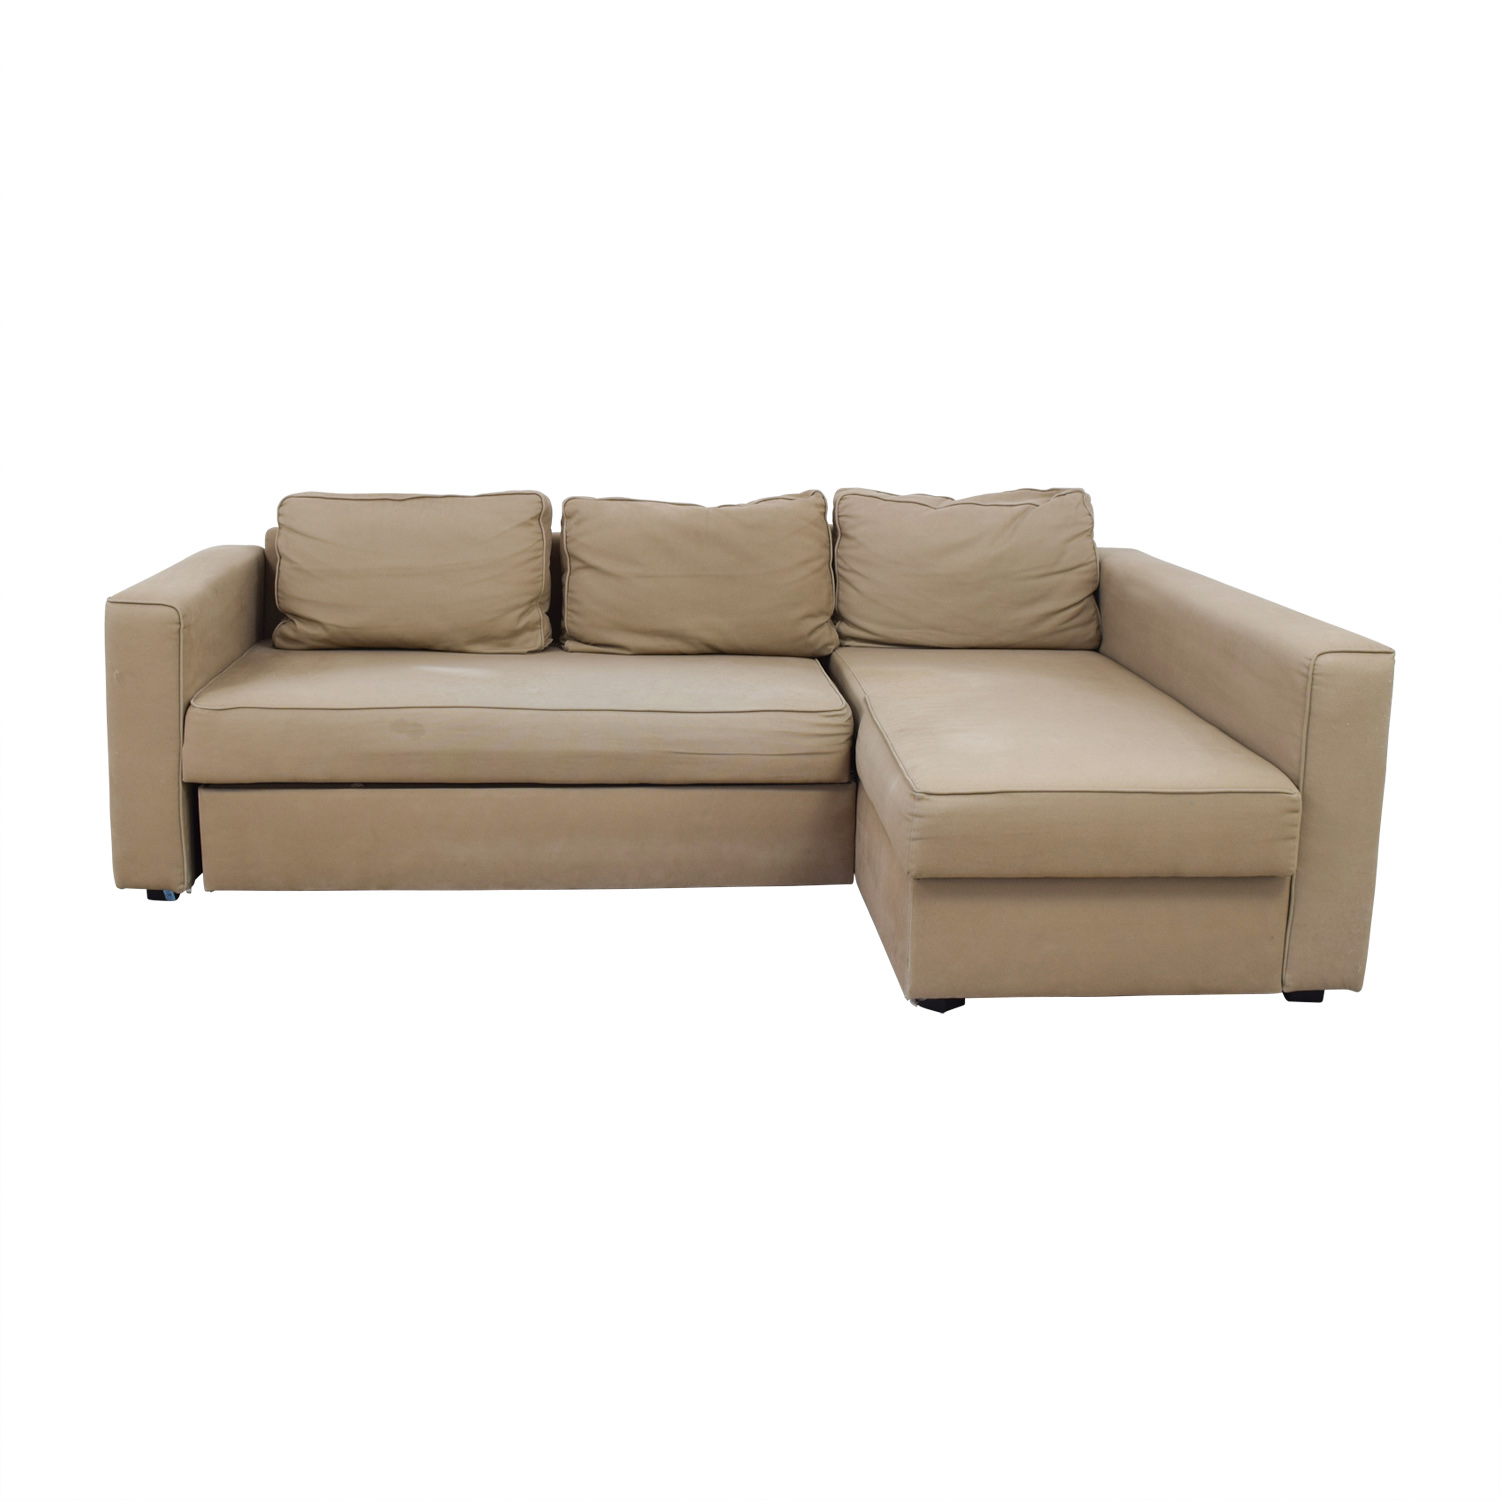 62% OFF - IKEA IKEA Manstad Sectional Sofa Bed with Storage / Sofas